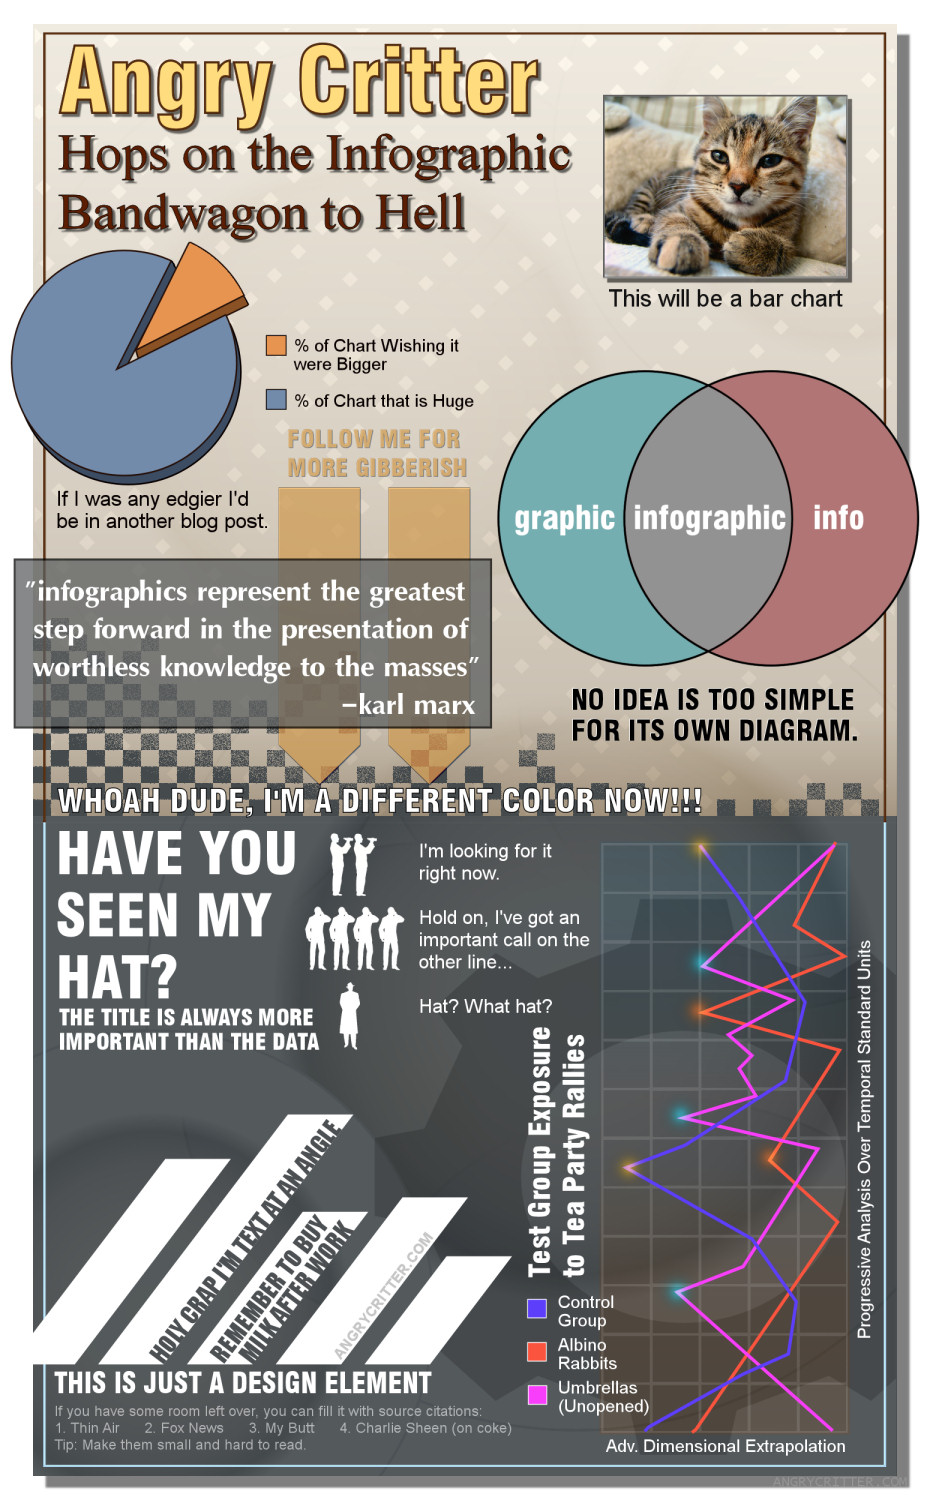 Hopping on the Infographic Bandwagon to Hell